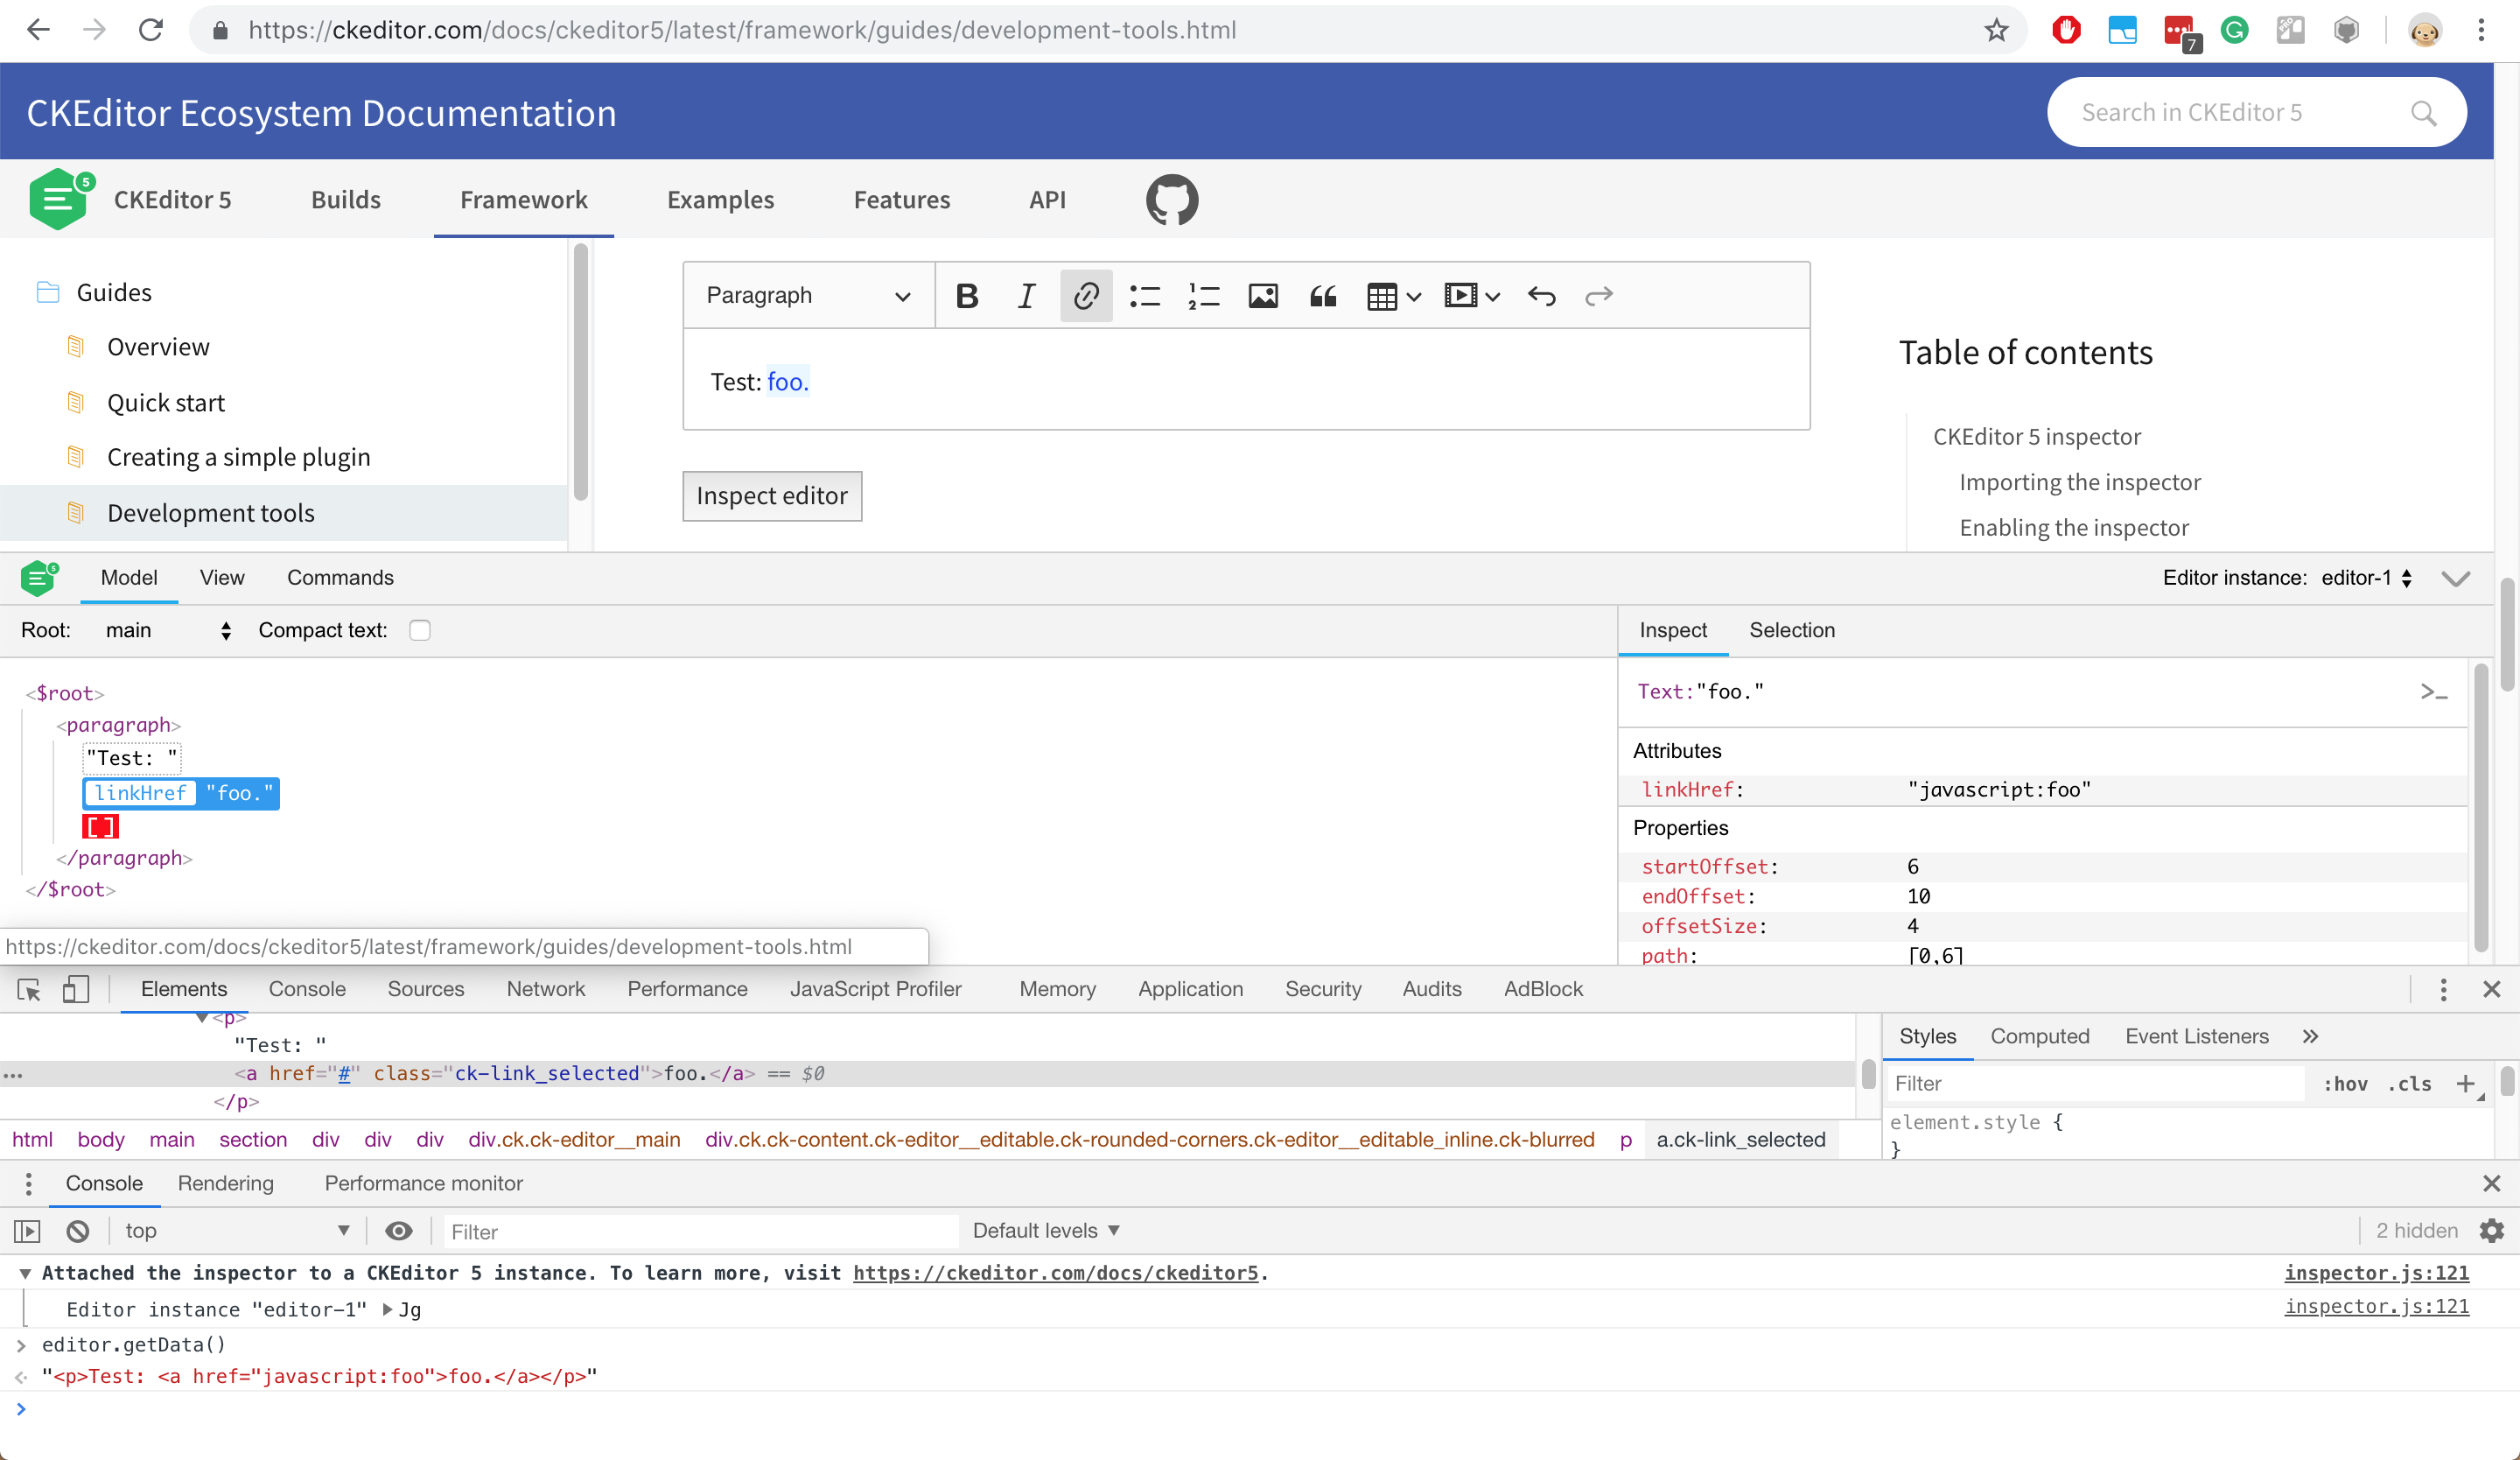 XSS sanitization · Issue #221 · ckeditor/ckeditor5-link · GitHub